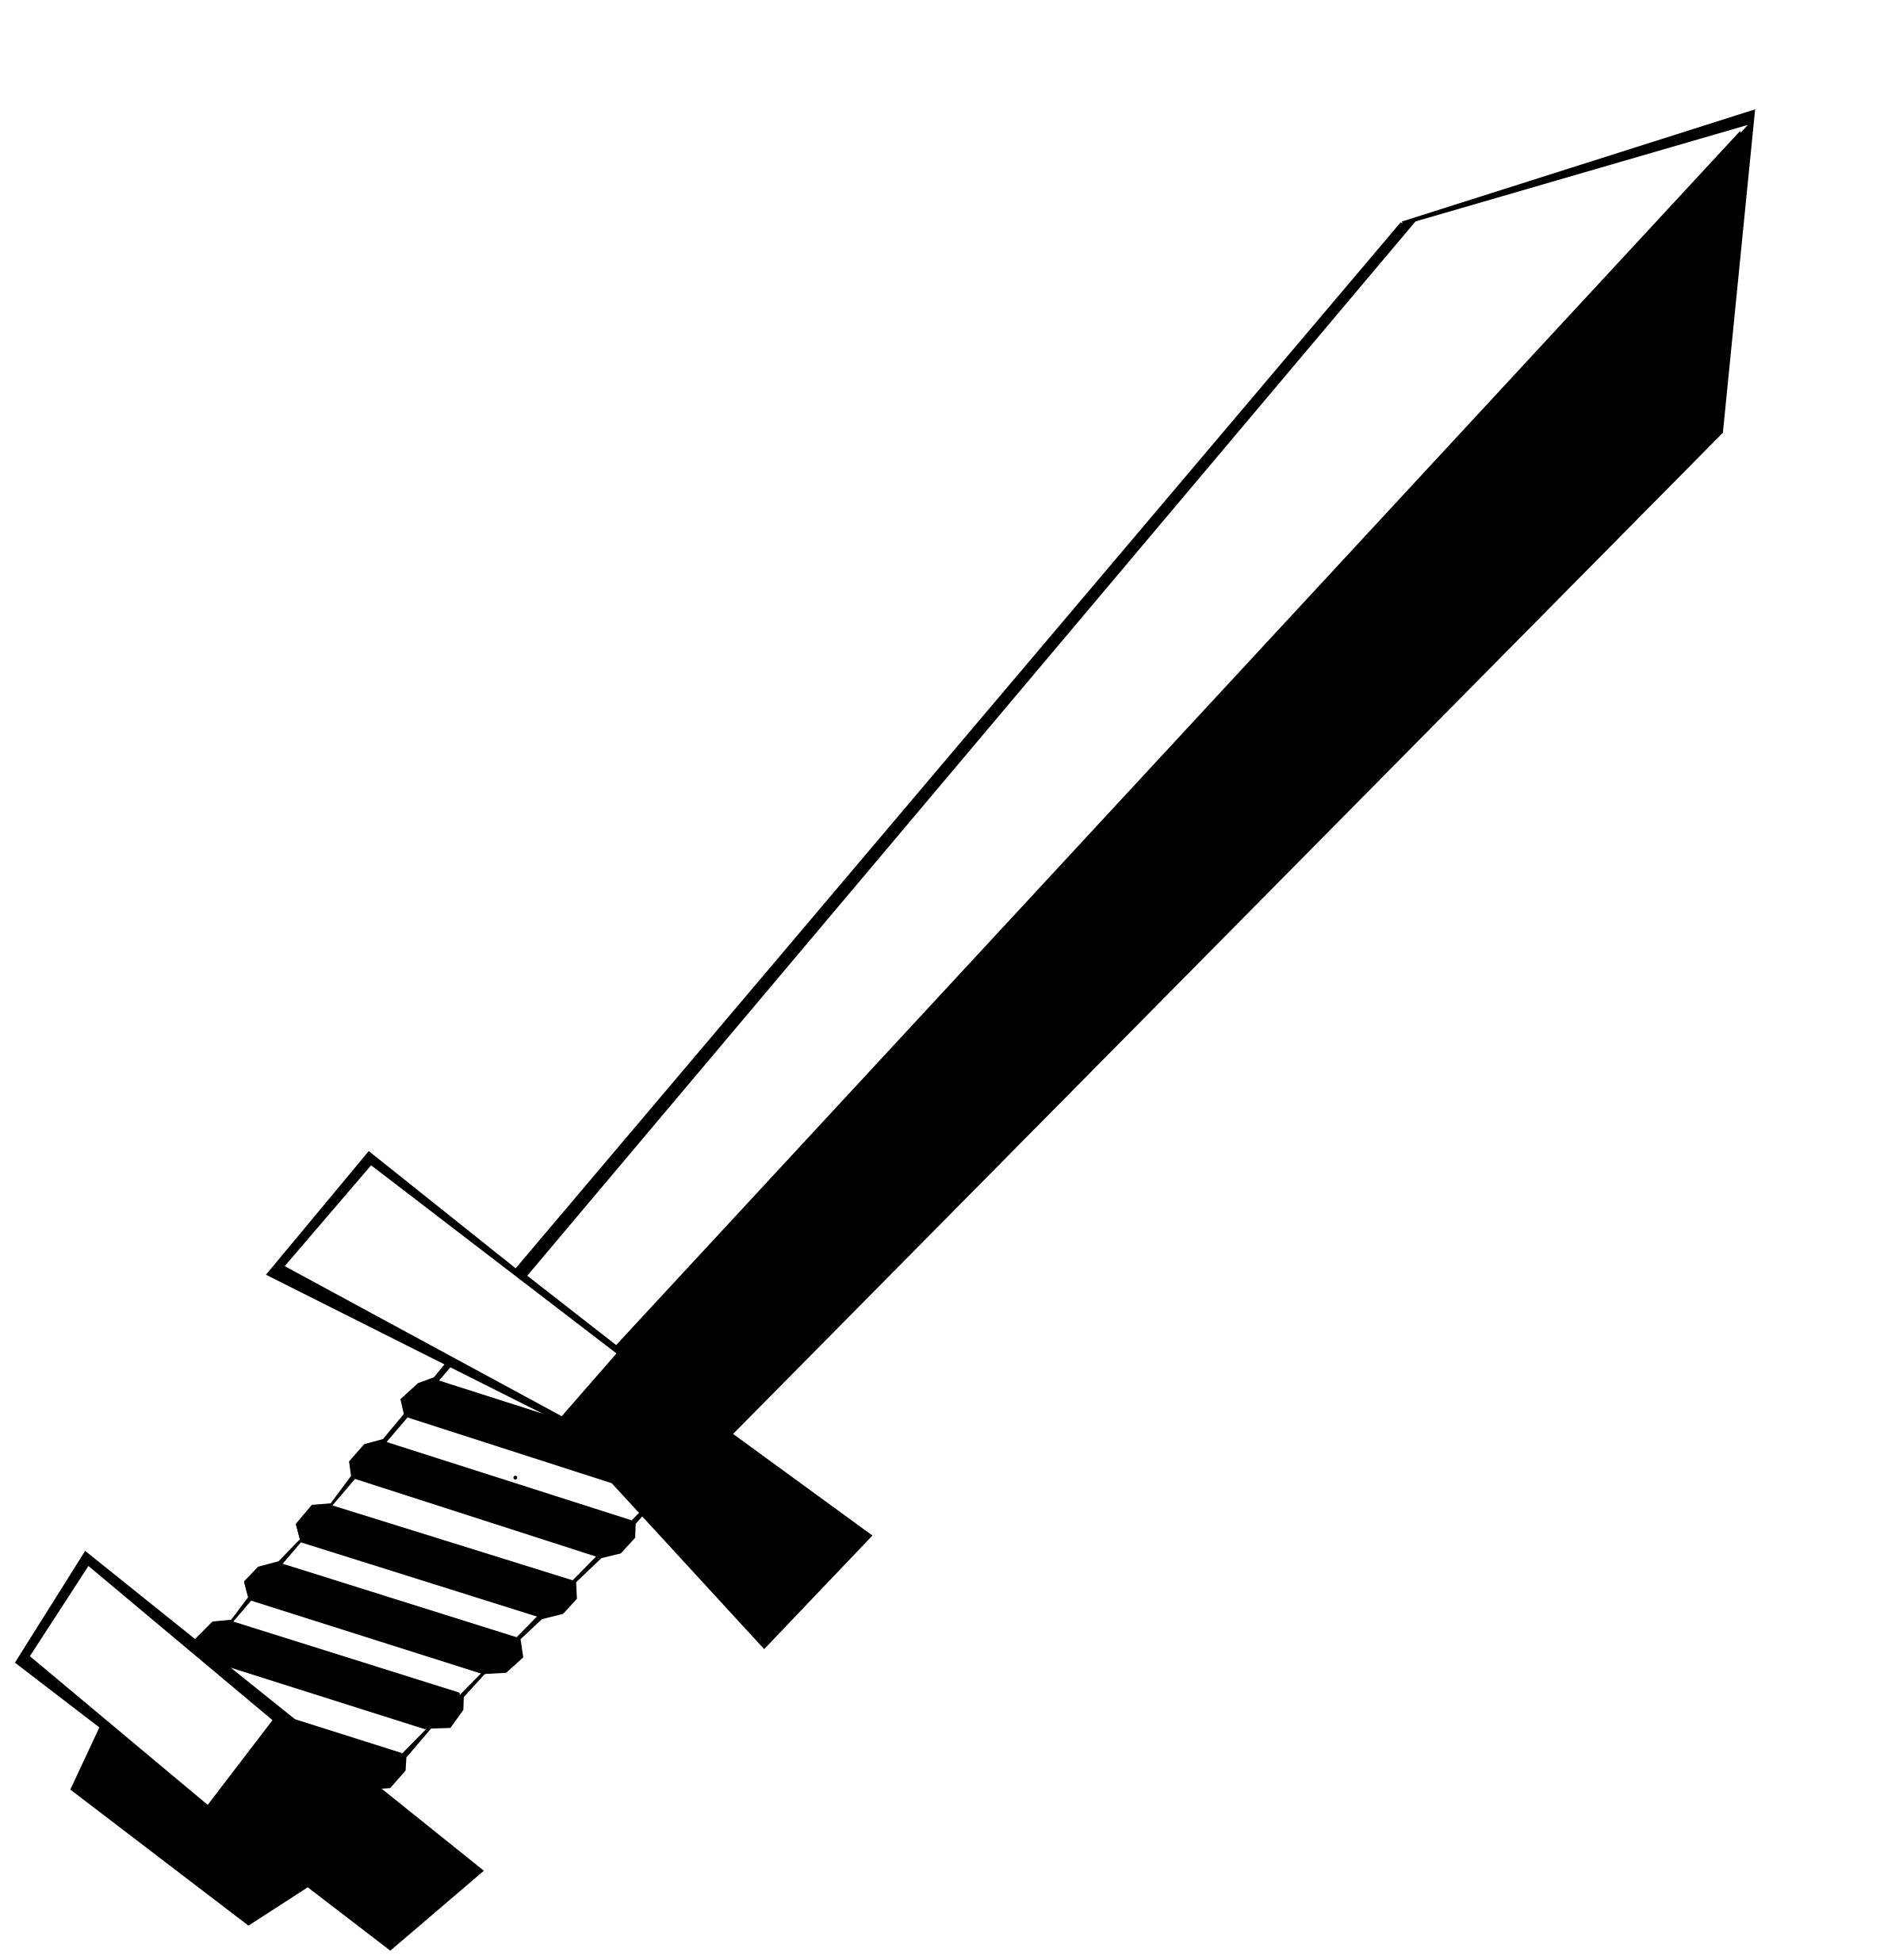 sword clipart black and white 2 clipart station rh clipartstation com sword clipart png sword clip art images